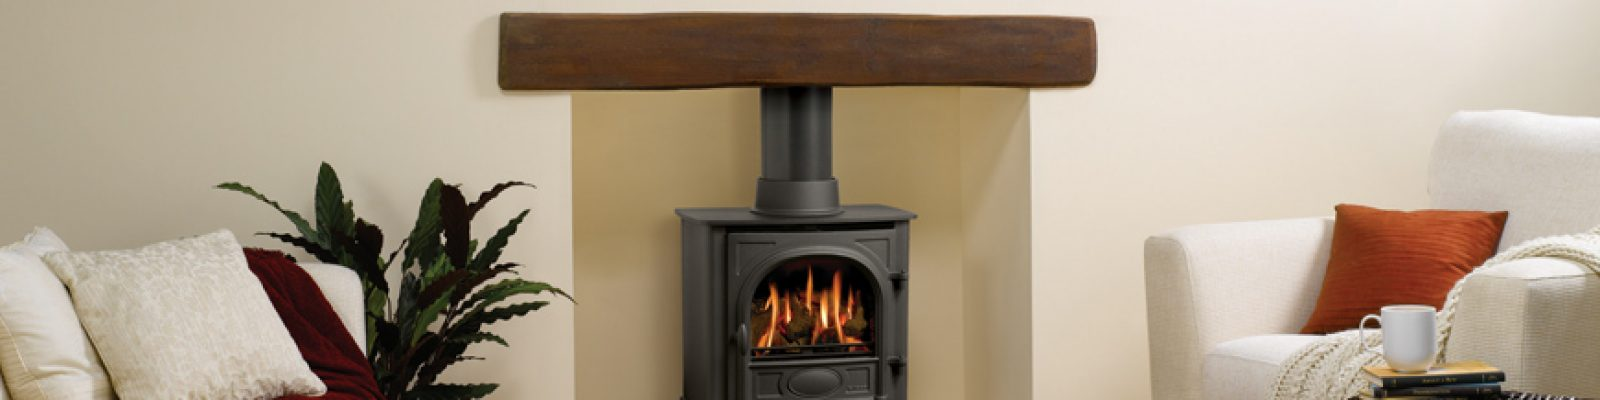 gas-stove-stockport